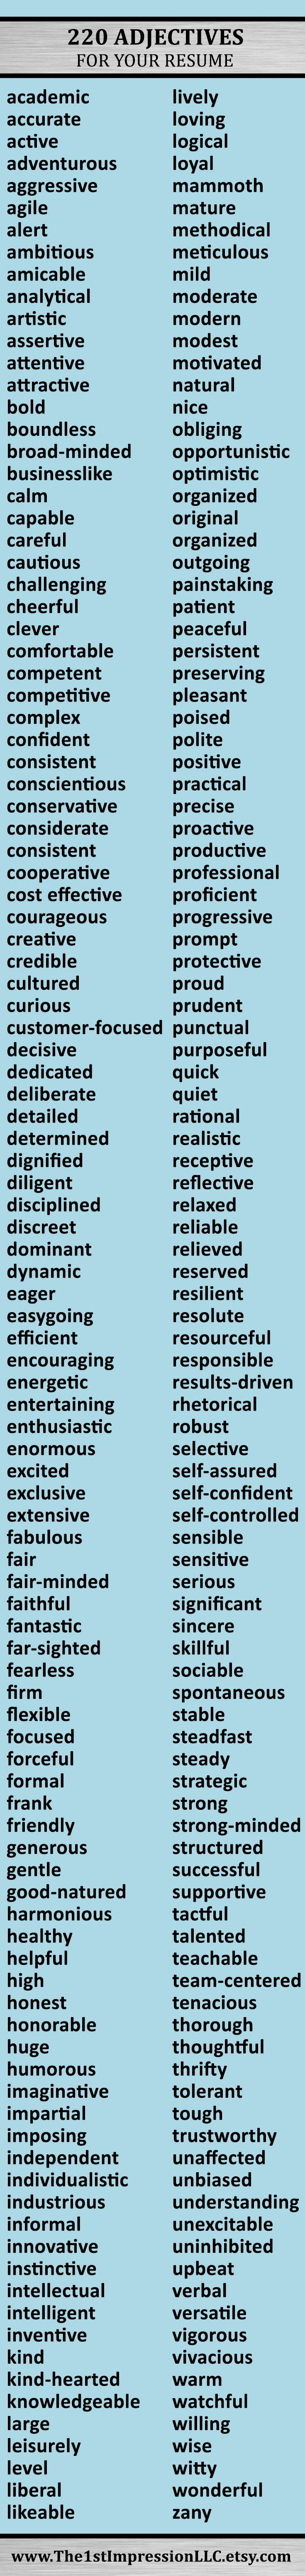 Huge List Of 220 Adjectives To Help You Write Your Resume